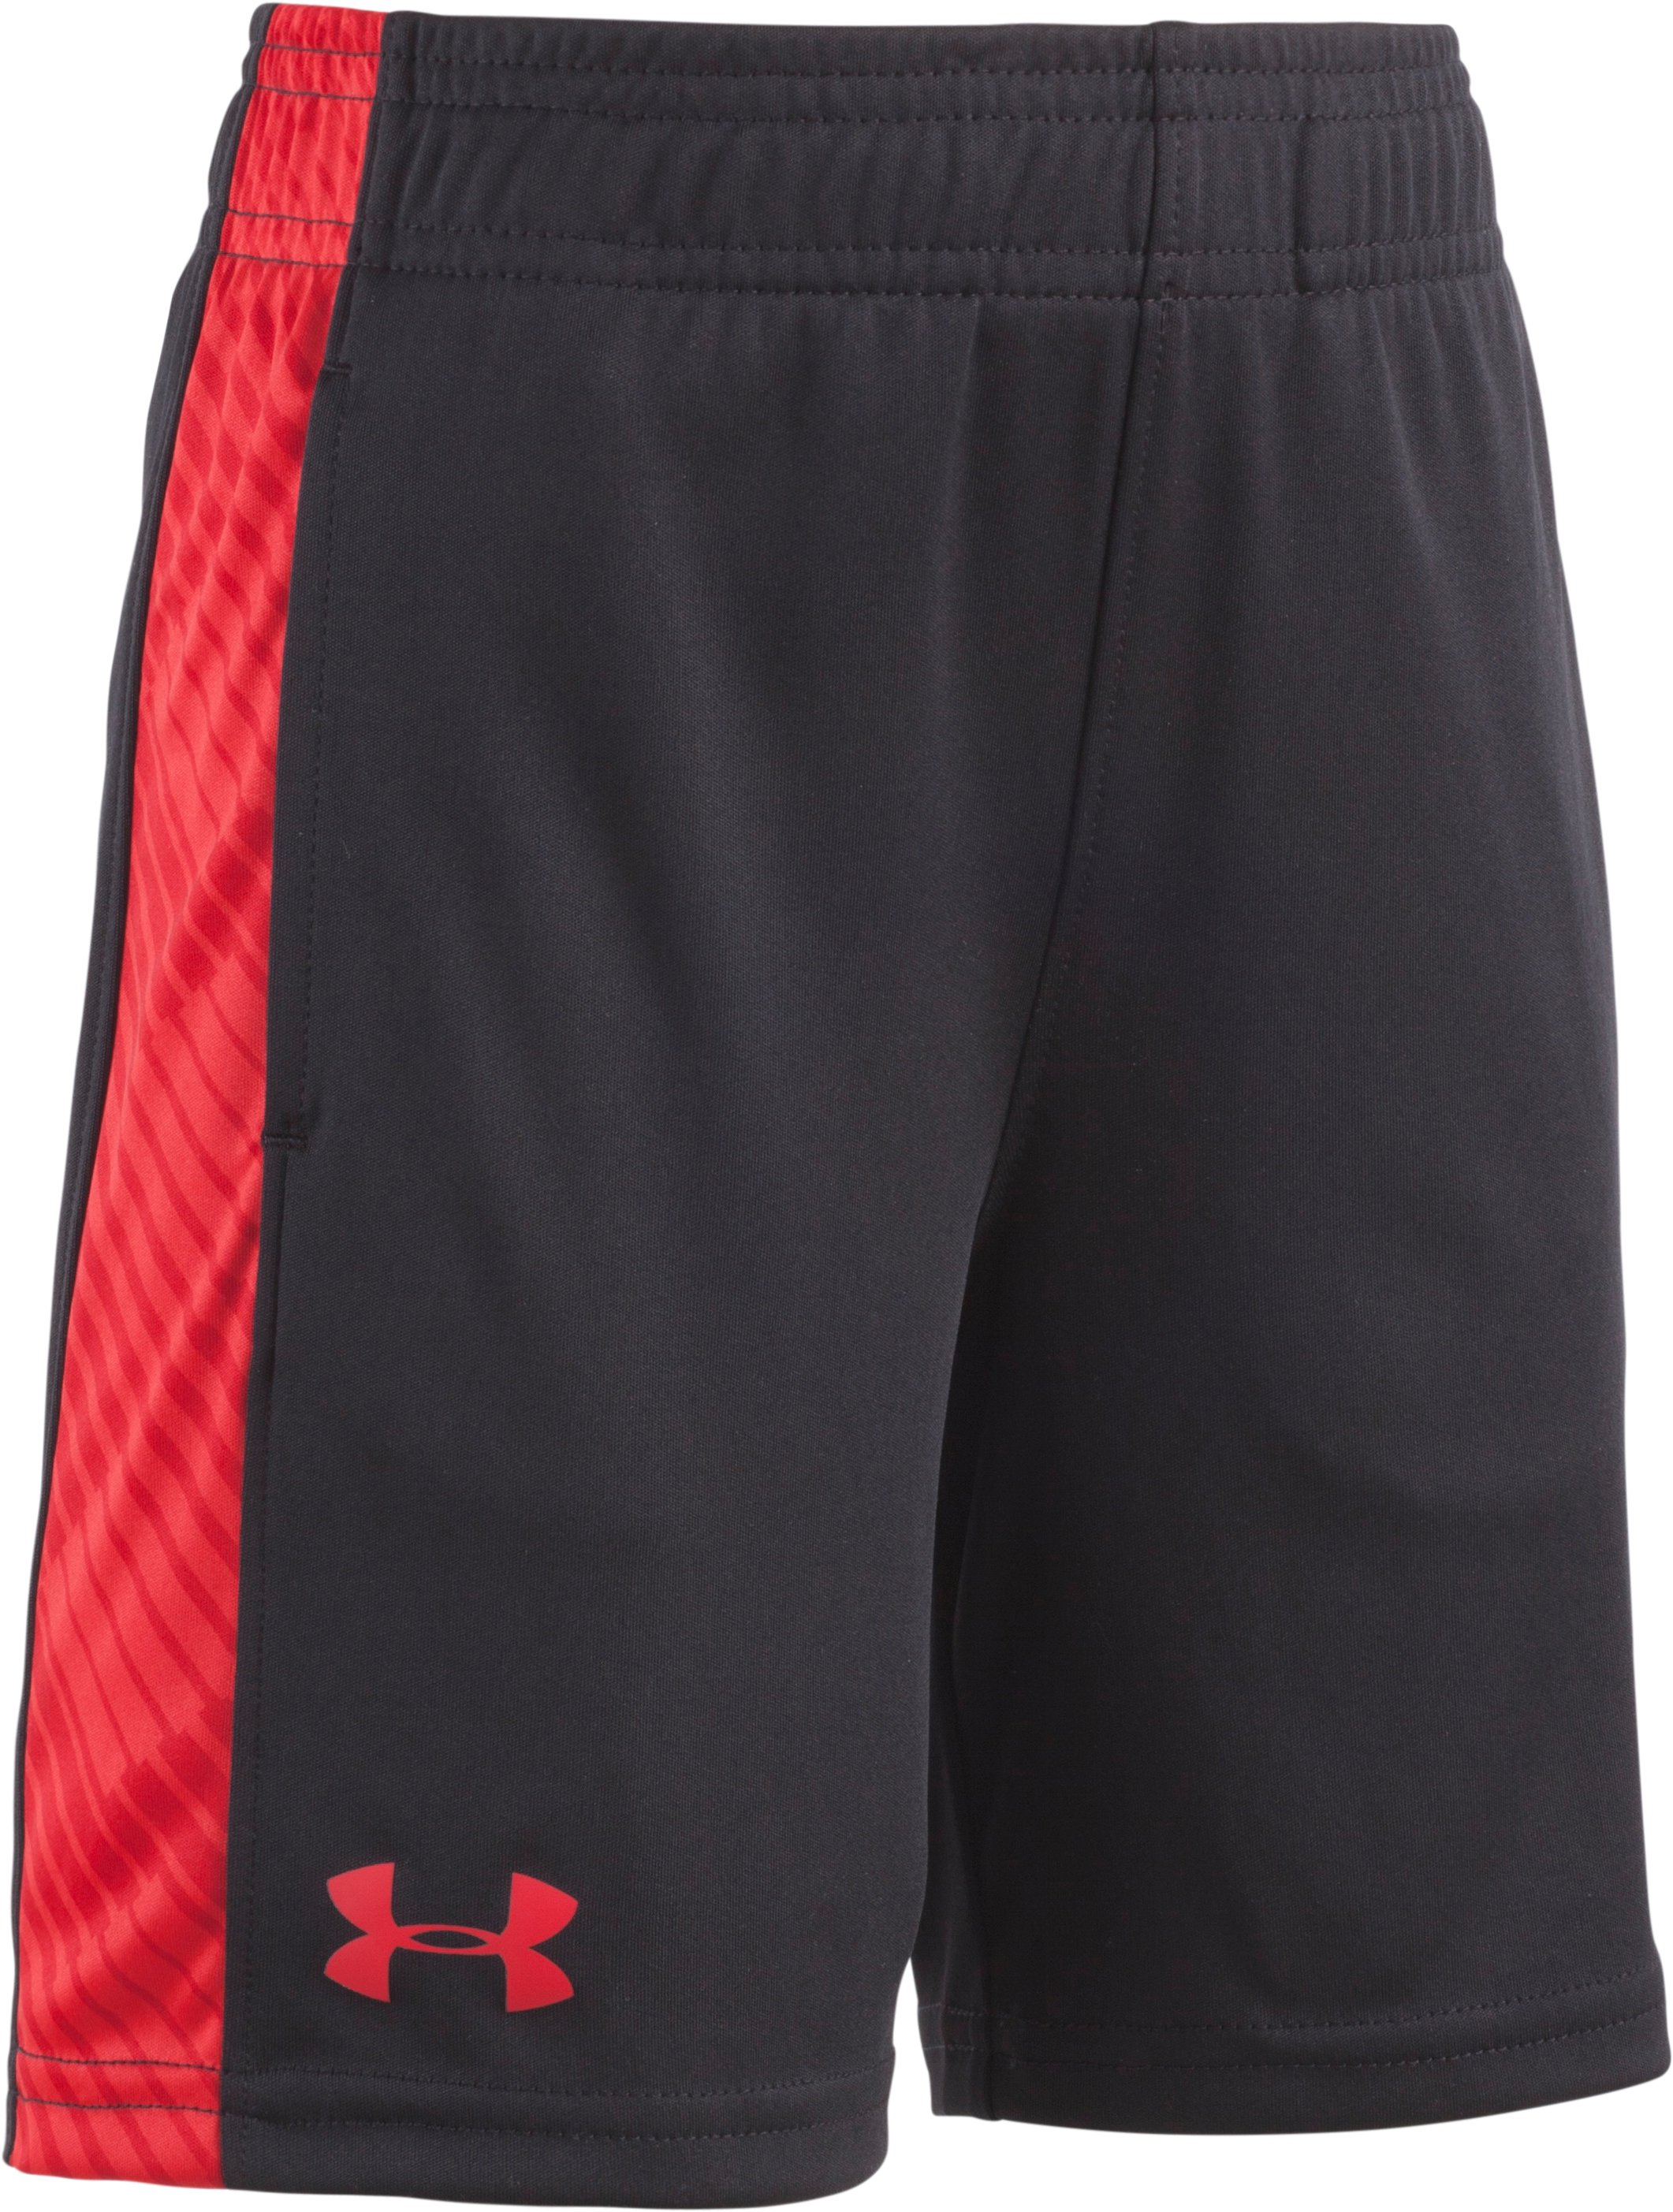 Boys' Pre-School UA Tilt Shift Eliminator Shorts, Black , Laydown